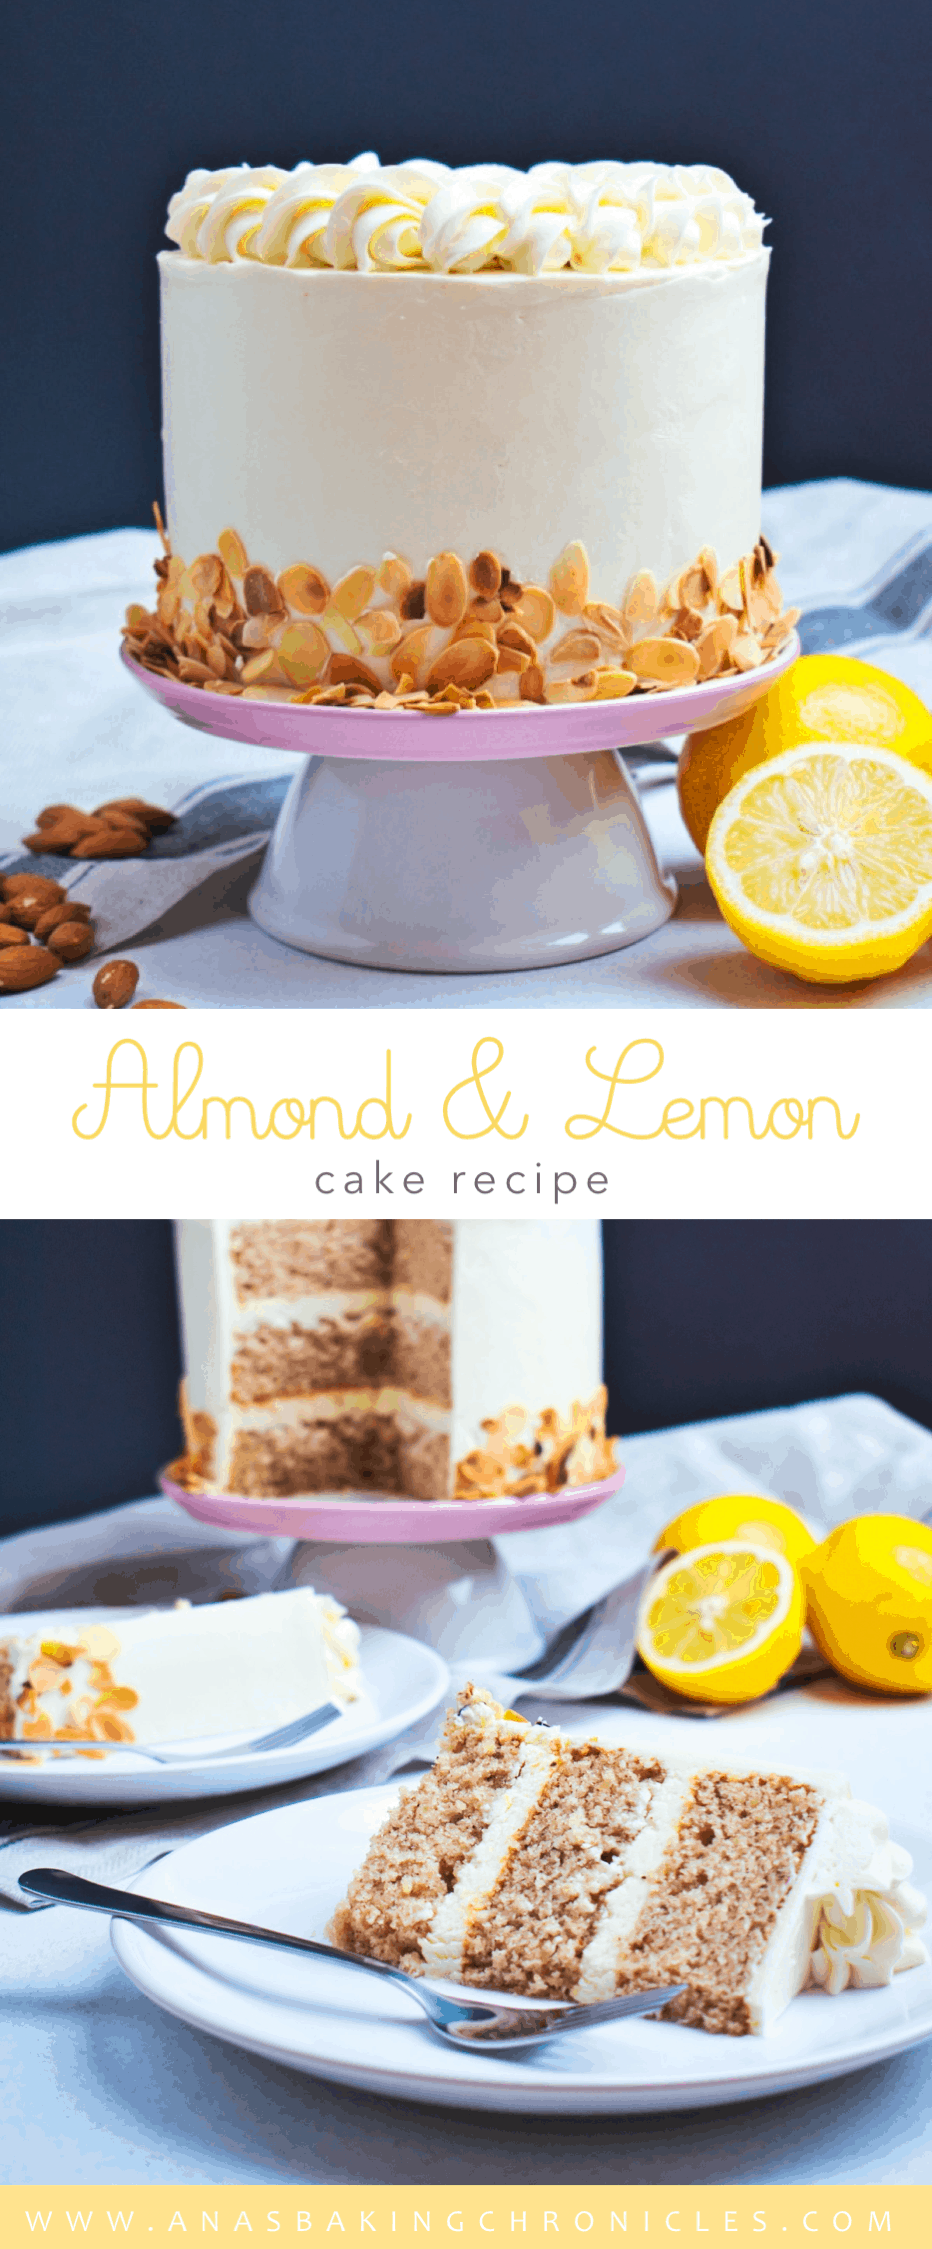 This Almond & Lemon Cake is truly magnificent. Soft and moist almond cake with a hint of cinnamon, filled with lemon cream cheese frosting and coated in lemon buttercream.⎪www.anasbakingchronicles.com